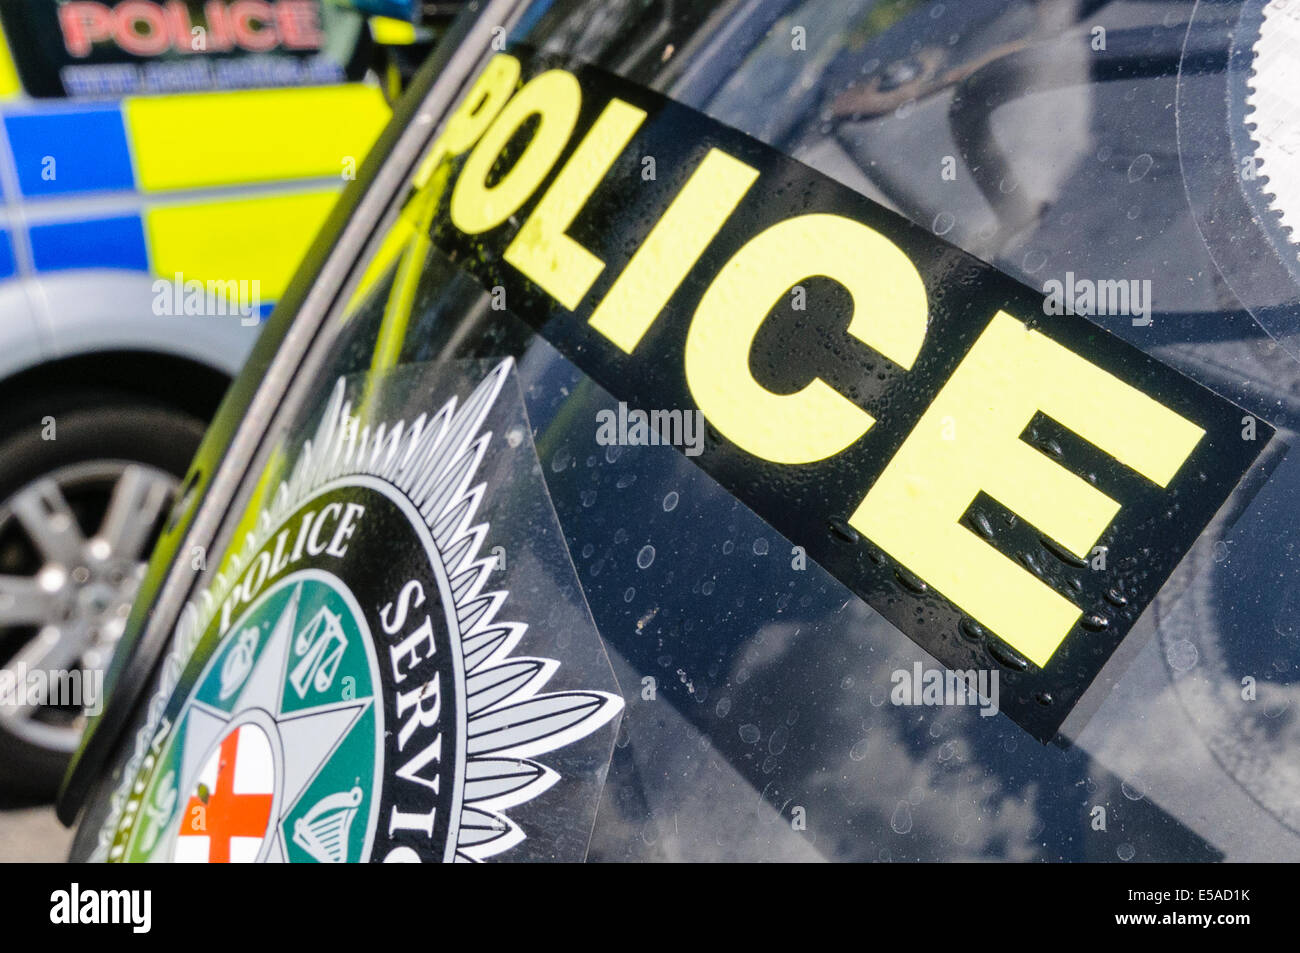 Lisburn, Northern Ireland. 25th July, 2014. - 'Police' on the front of a motorcycle Credit:  Stephen Barnes/Alamy - Stock Image